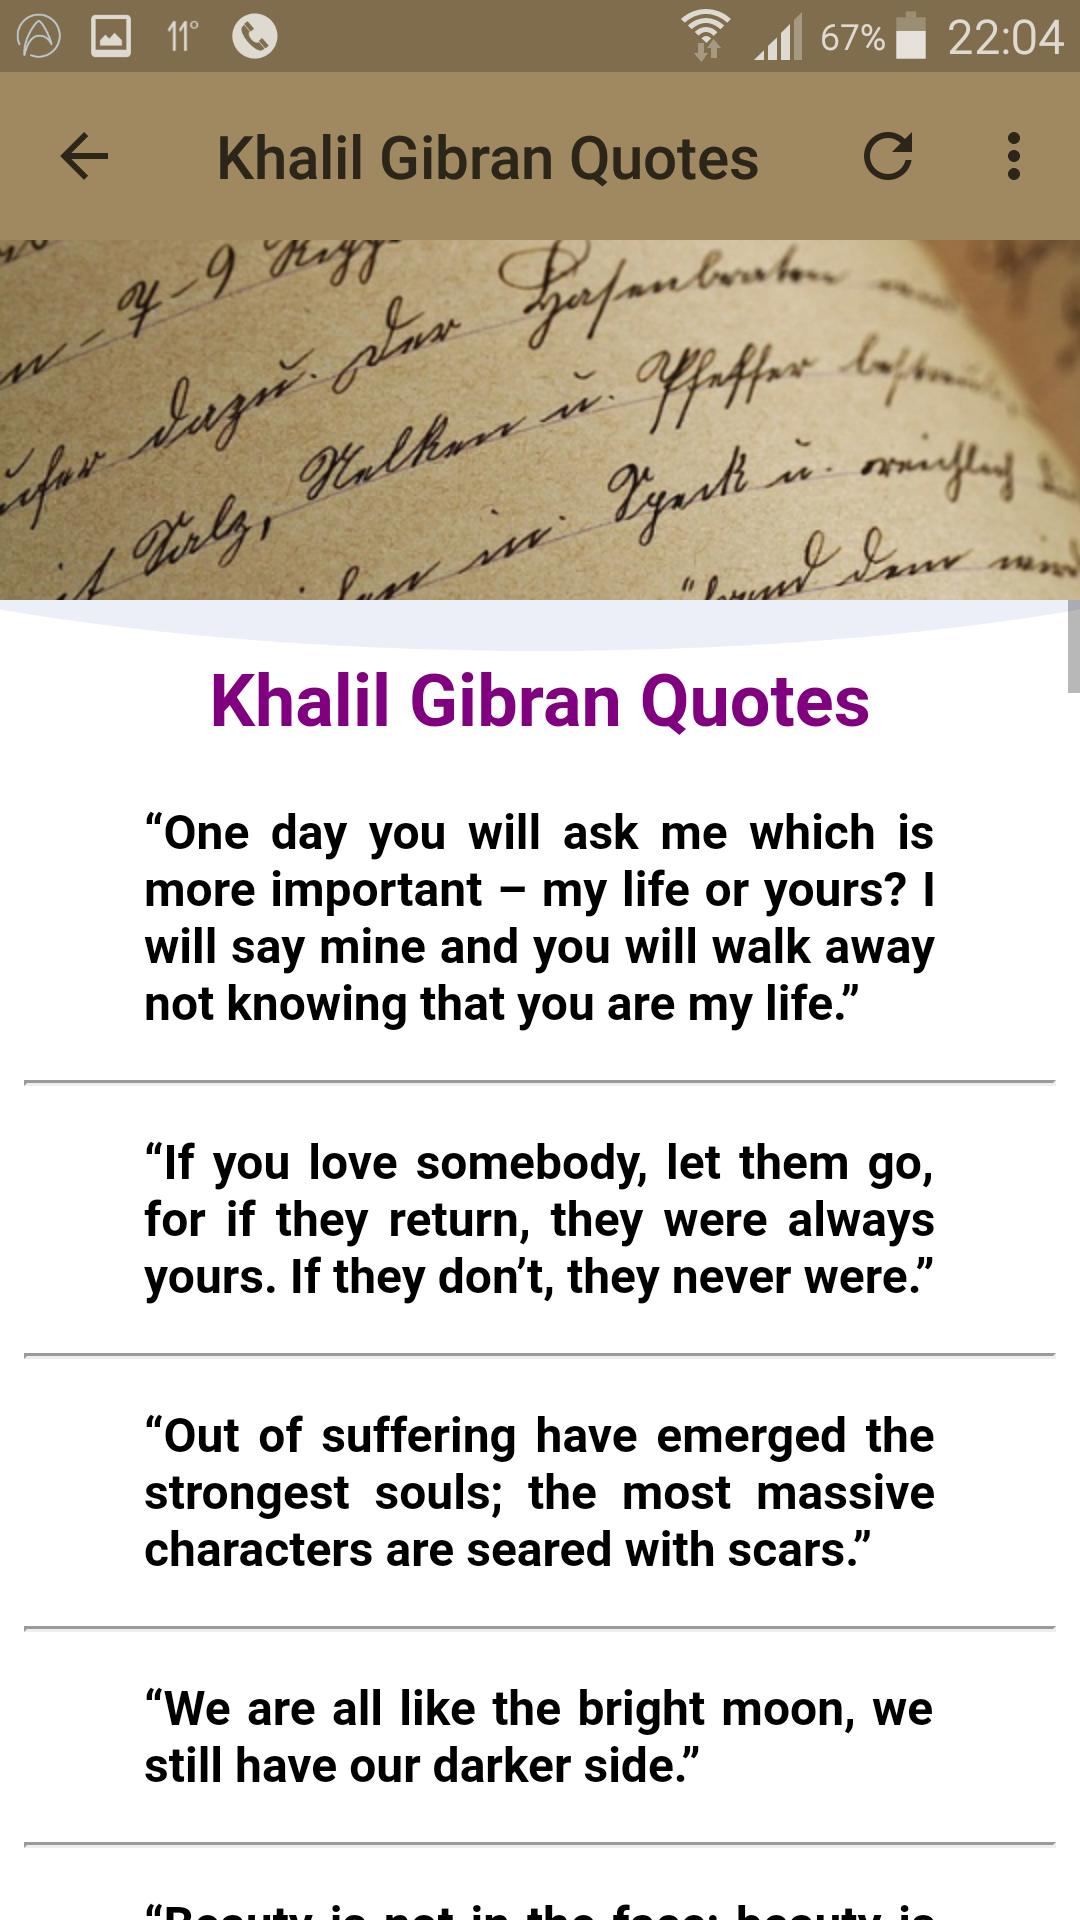 Khalil Gibran Quotes for Android - APK Download